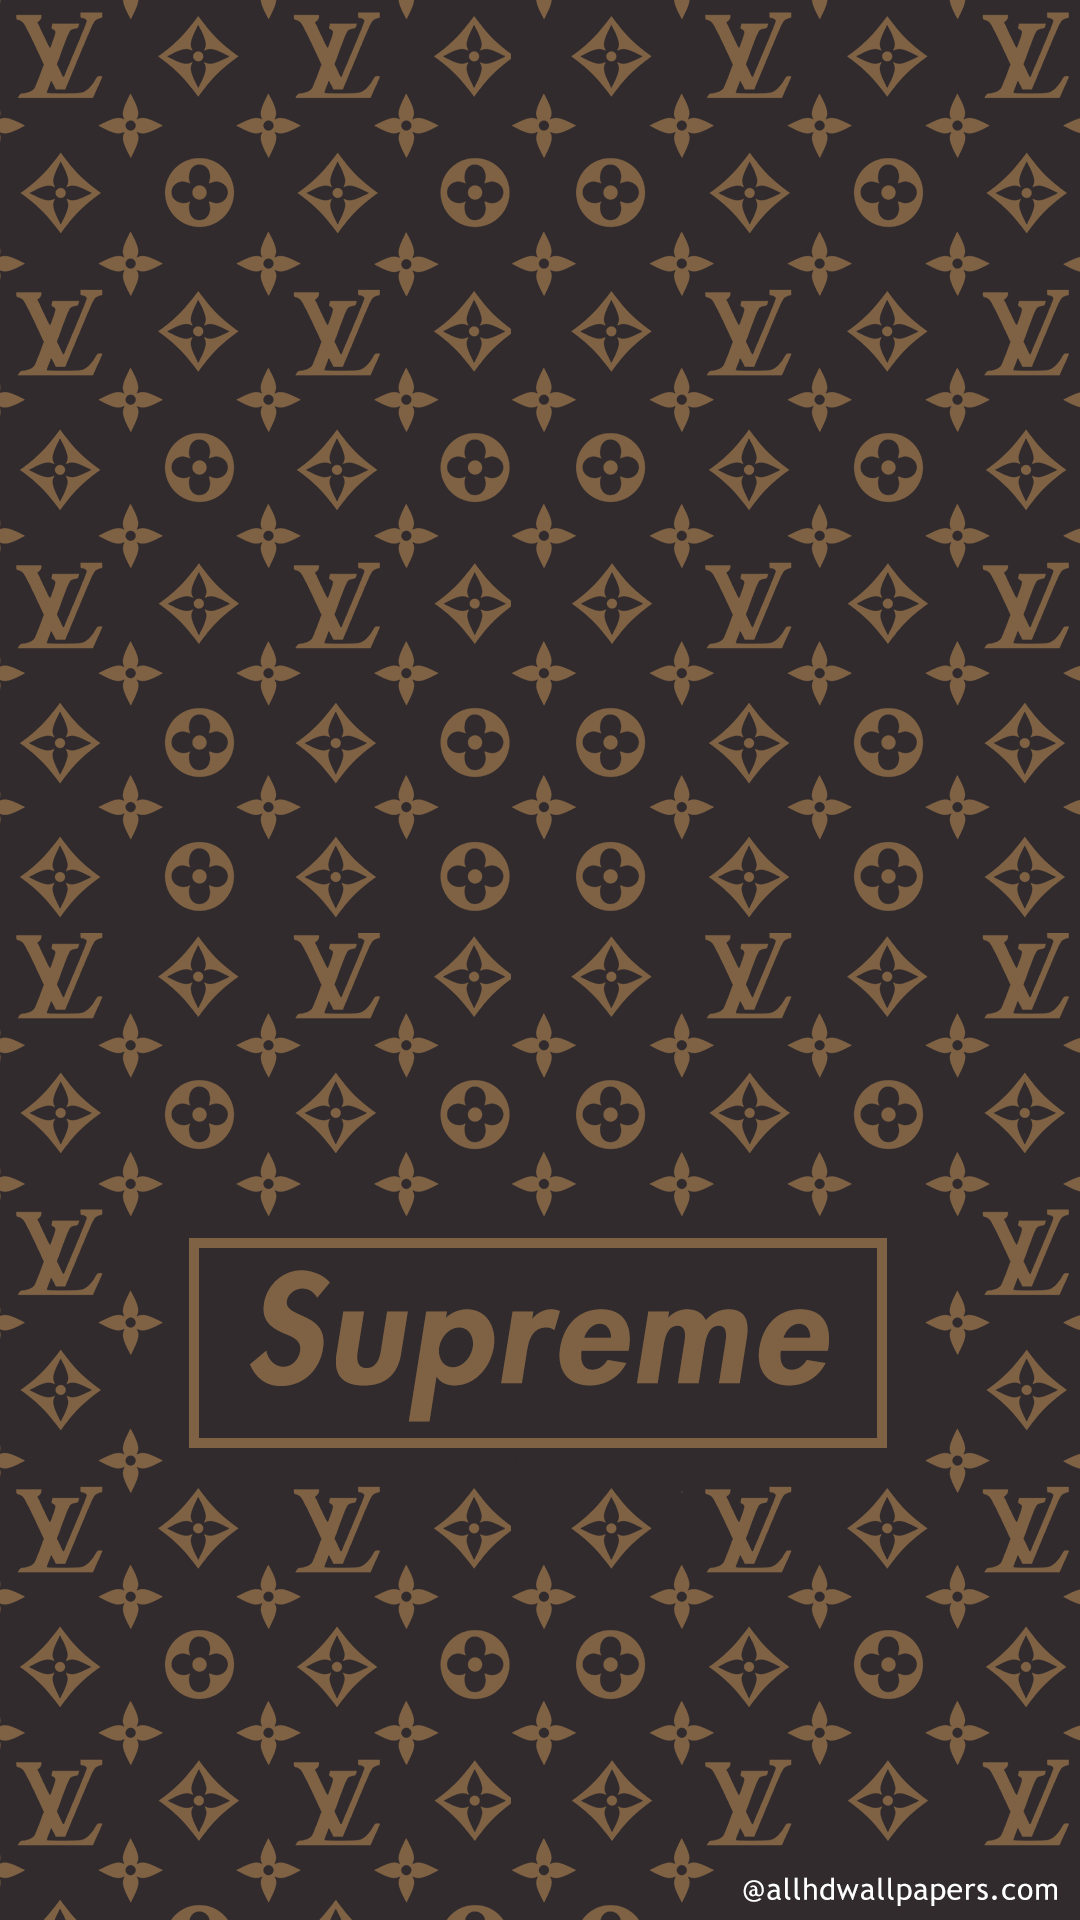 70 Supreme Wallpapers In 4k Allhdwallpapers